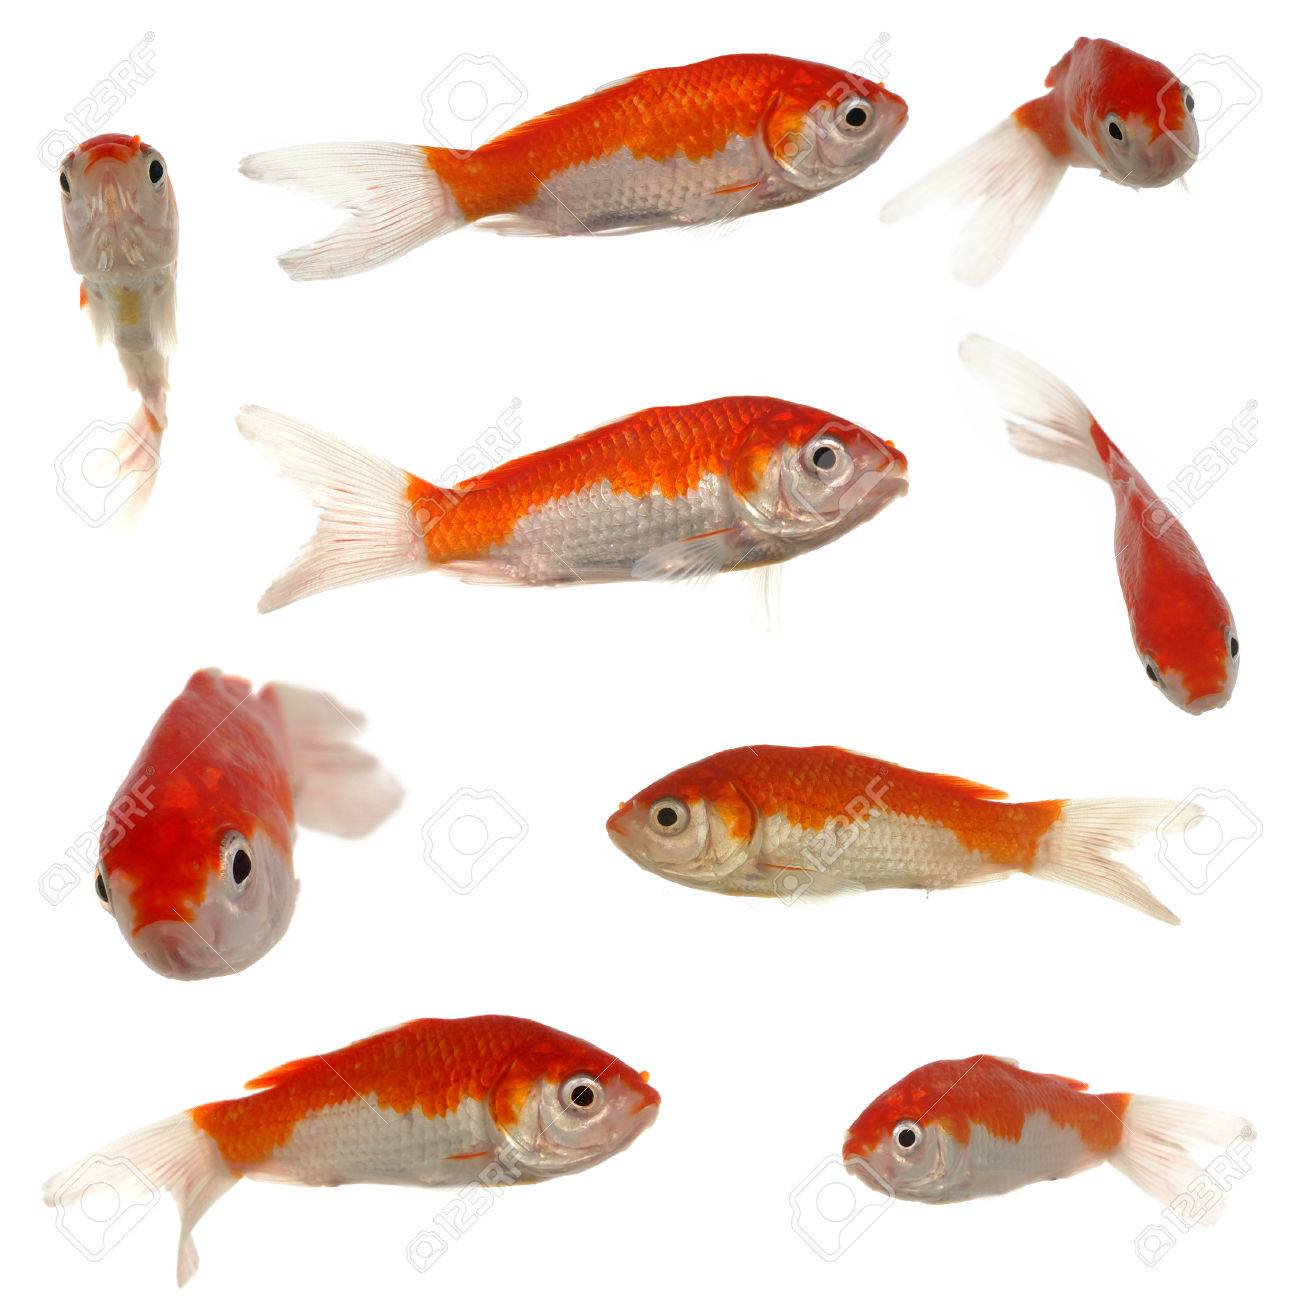 Collection of goldfish. Resolution 3000 x 3000 pixels. On clean white background. Stock Photo - 1648738